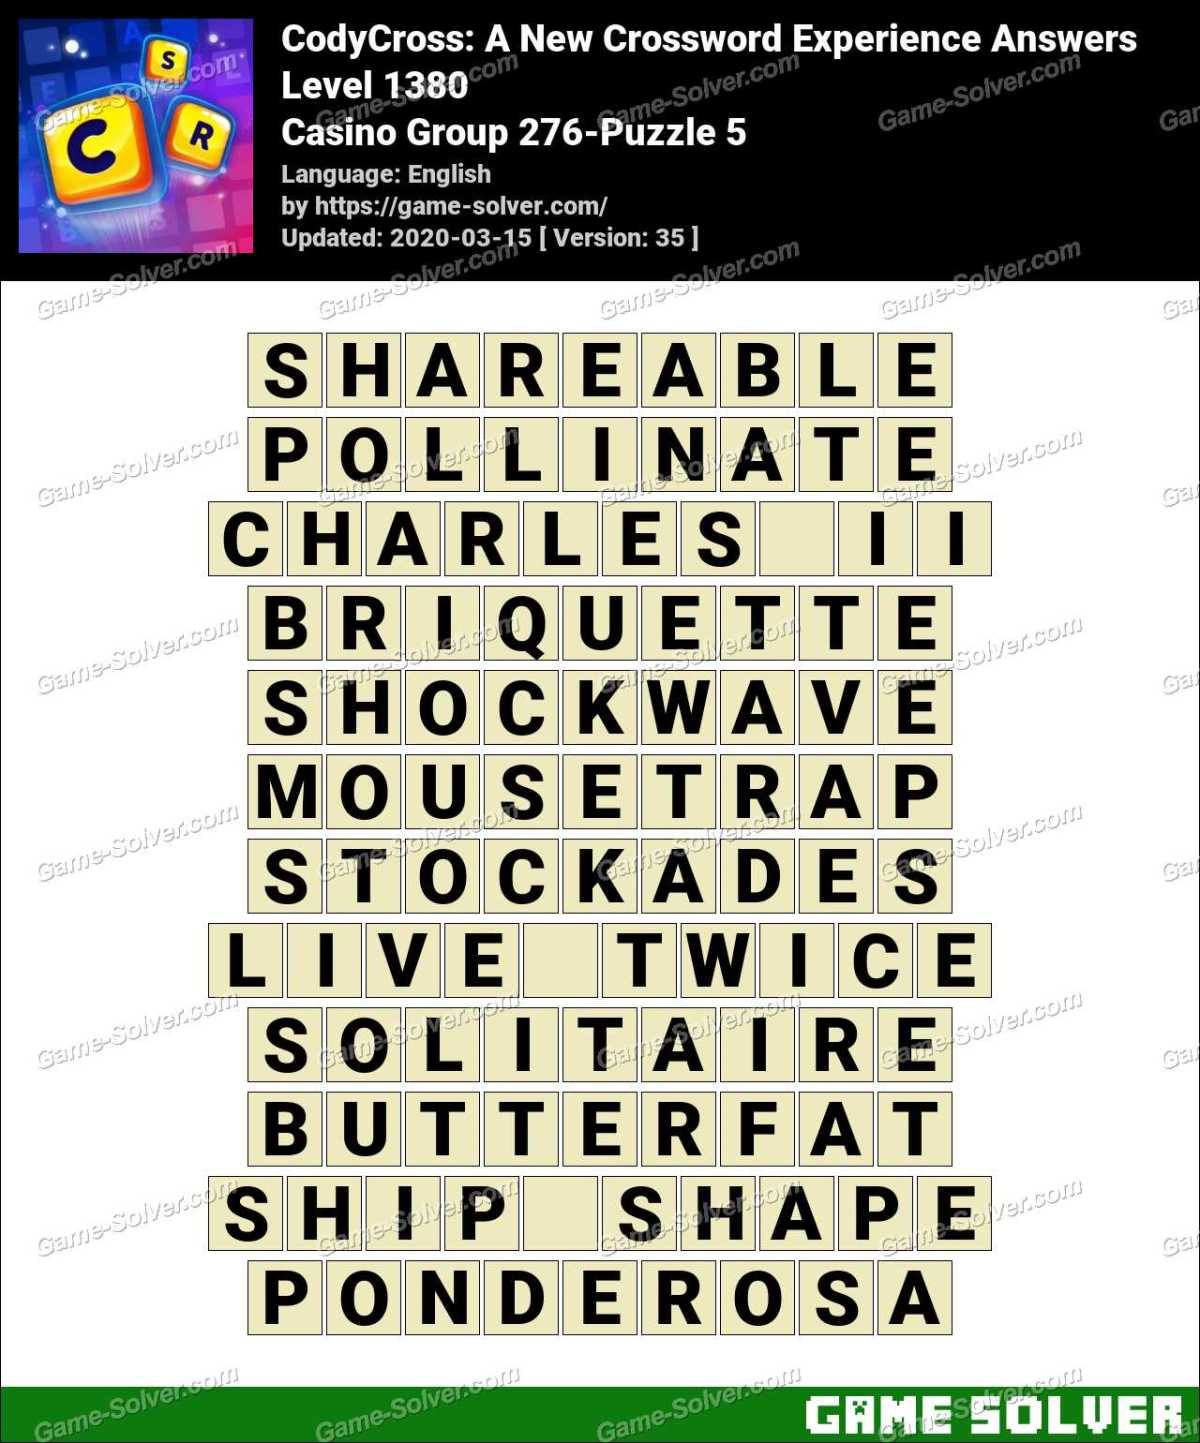 CodyCross Casino Group 276-Puzzle 5 Answers